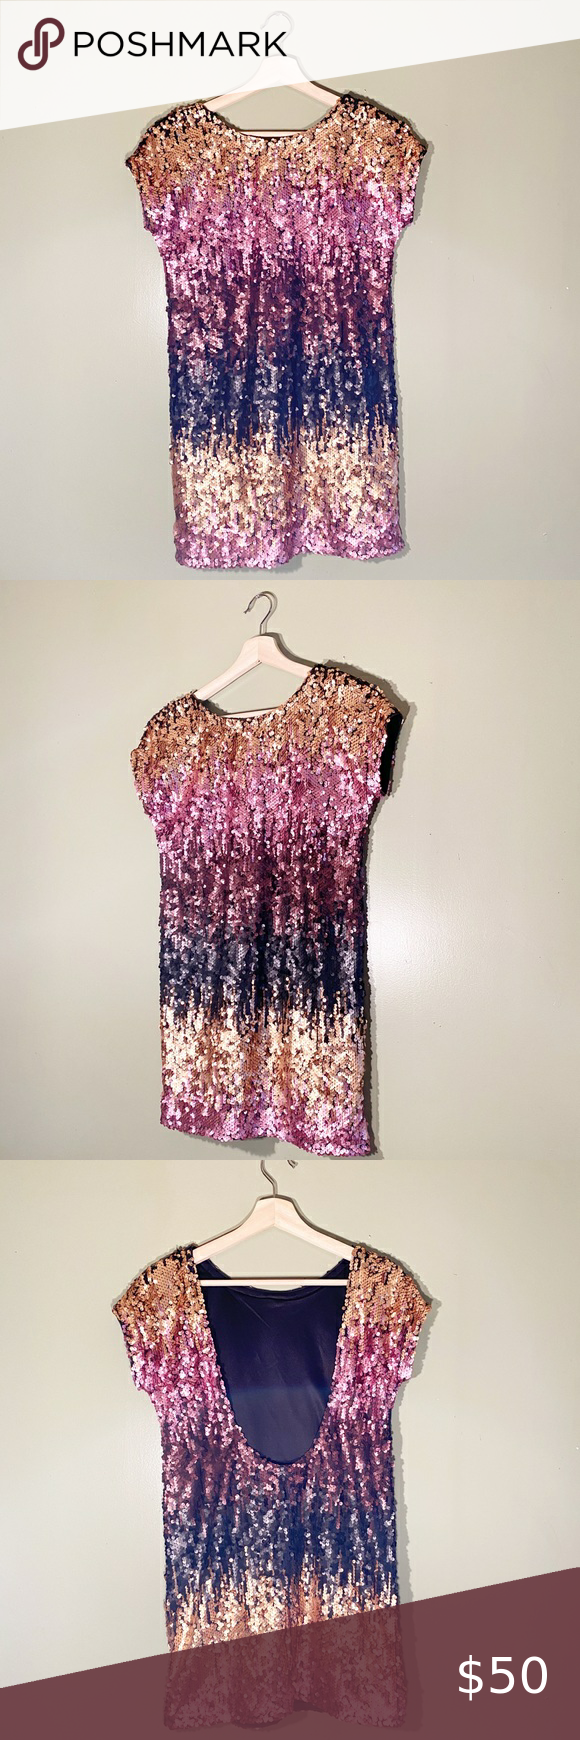 TOBI MULTI SEQUIN SHIFT DRESS Women's TOBI Pink & Black Sequin Shift Dress  Size: XS  Length: 31in, Pit: 18in In excellent condition!  Comes from a smoke free environment   K0227  Tags: sequin, shift dress, mini dress, classy, chic, summer, spring, sassy, sexy, shiny, Party, date night, Tobi Tobi Dresses Mini